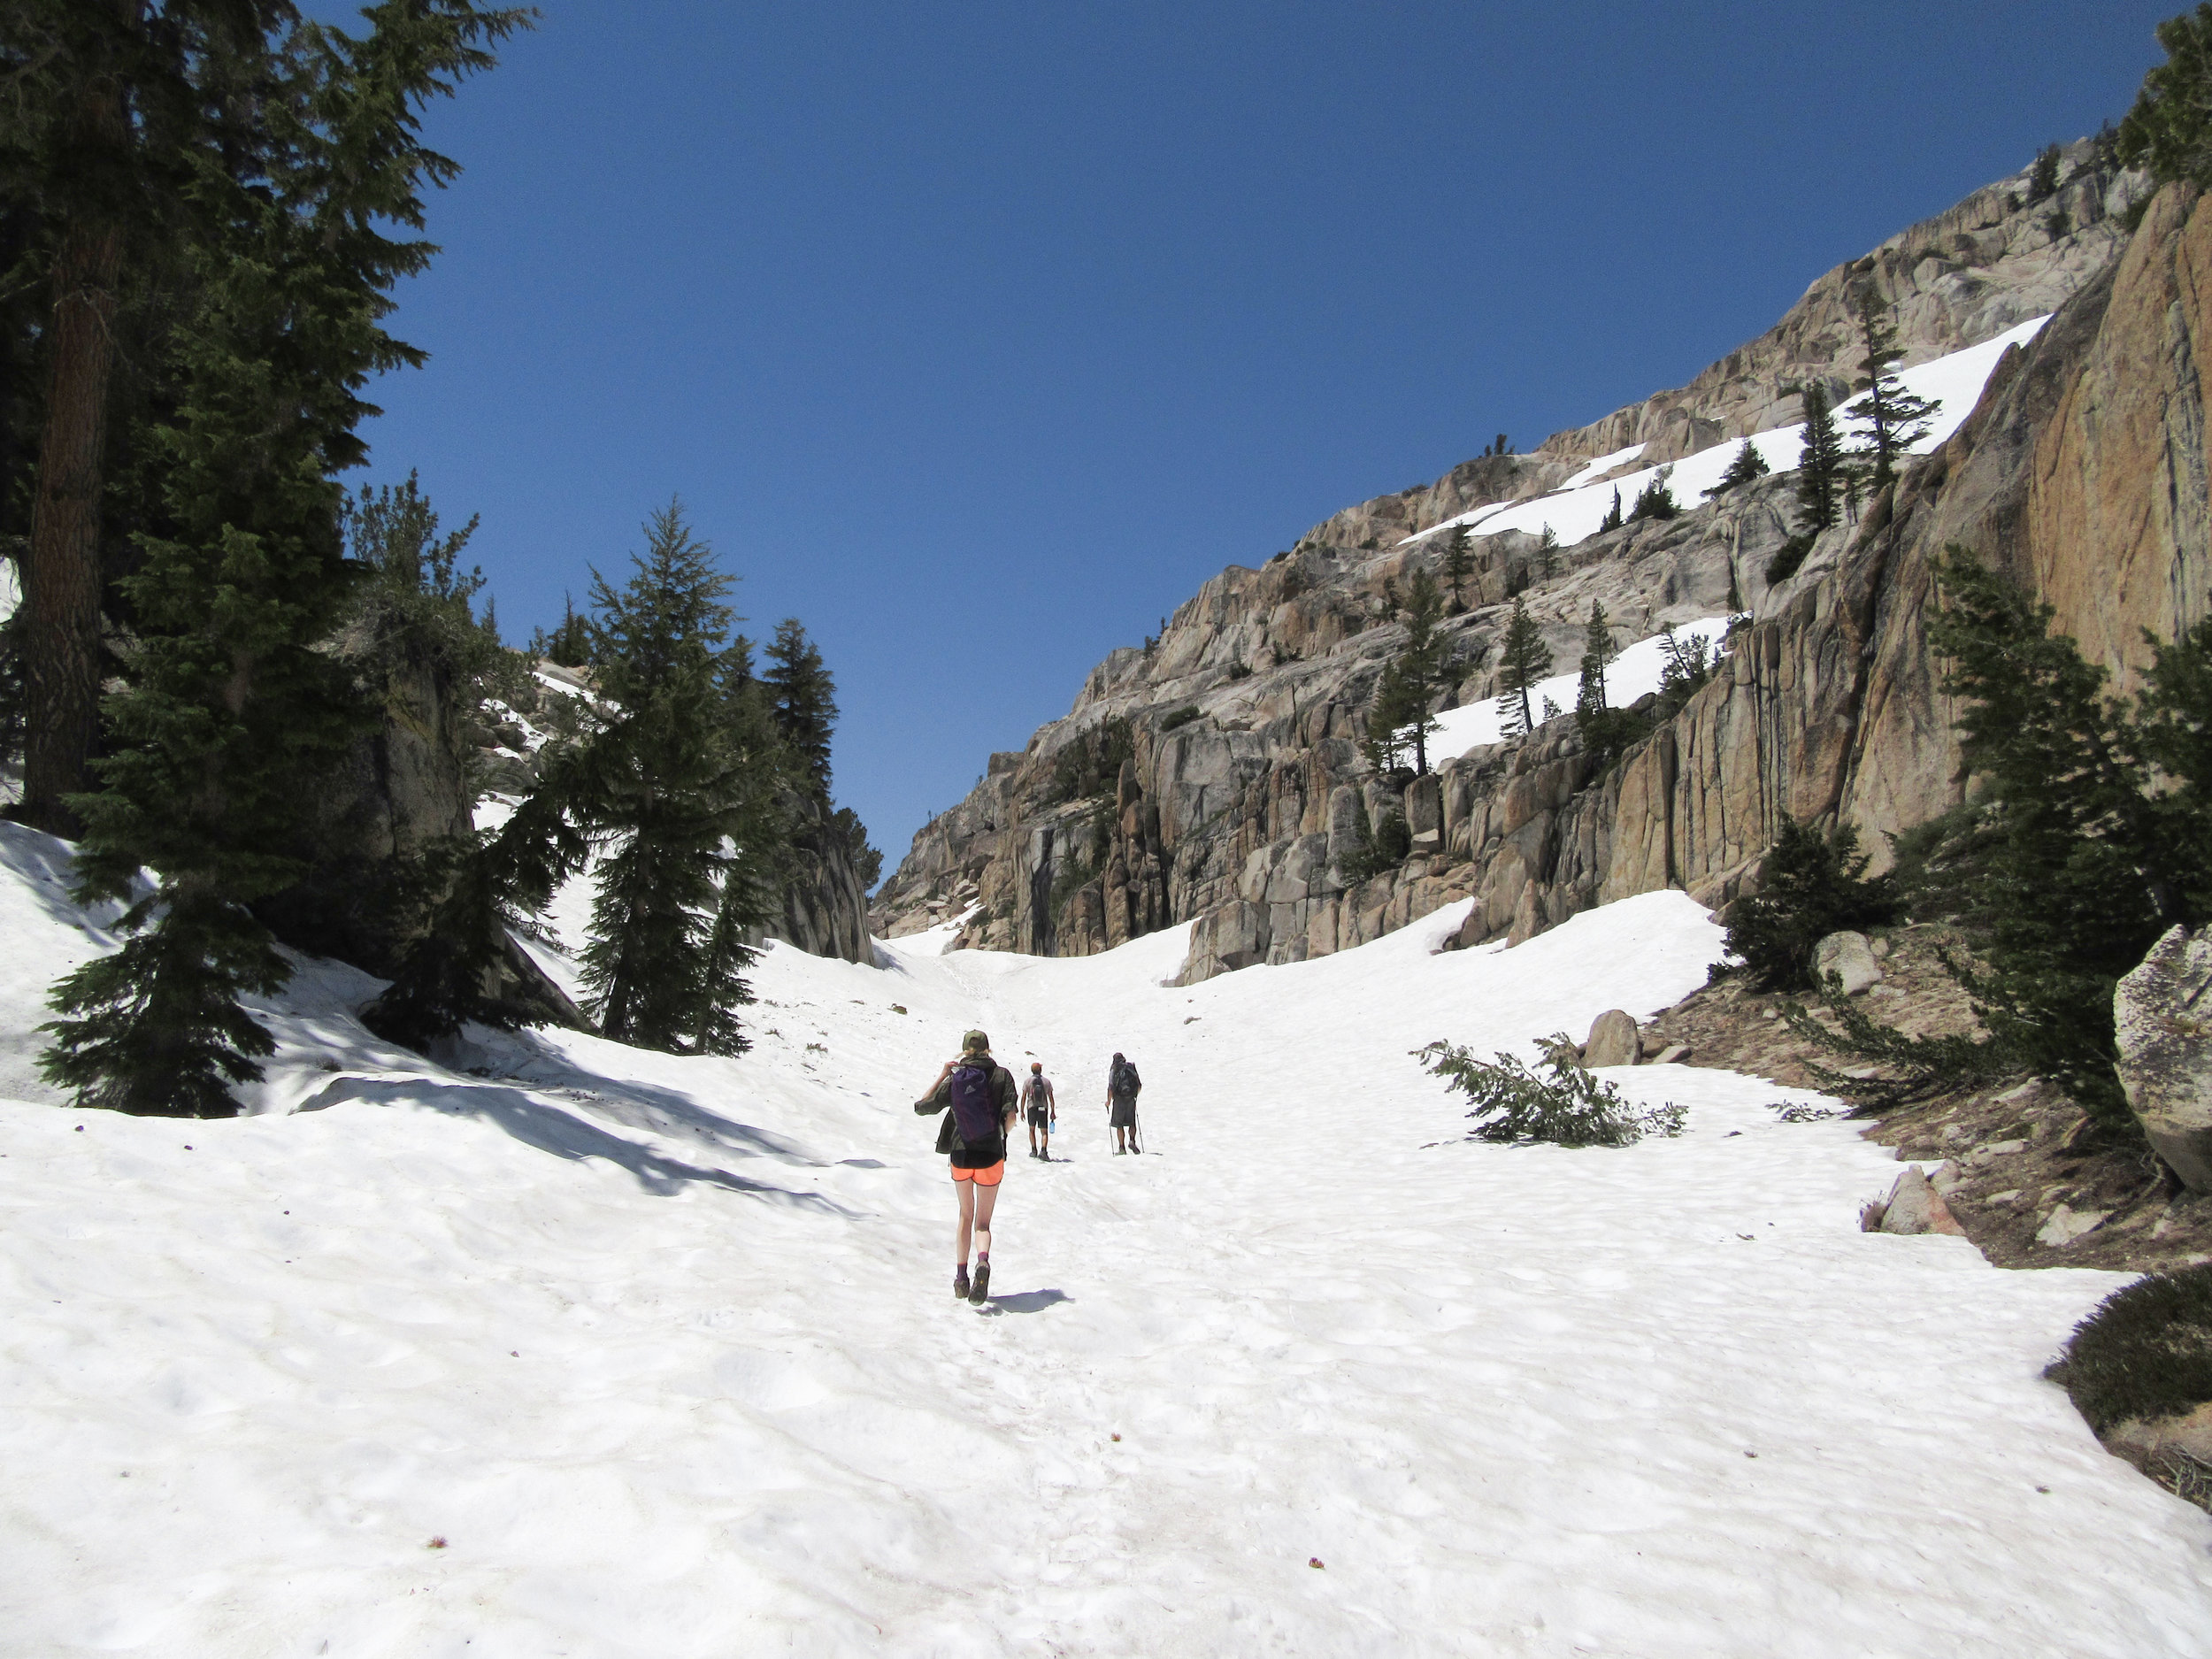 The trail up to Peeler Lake was covered in many feet of snow